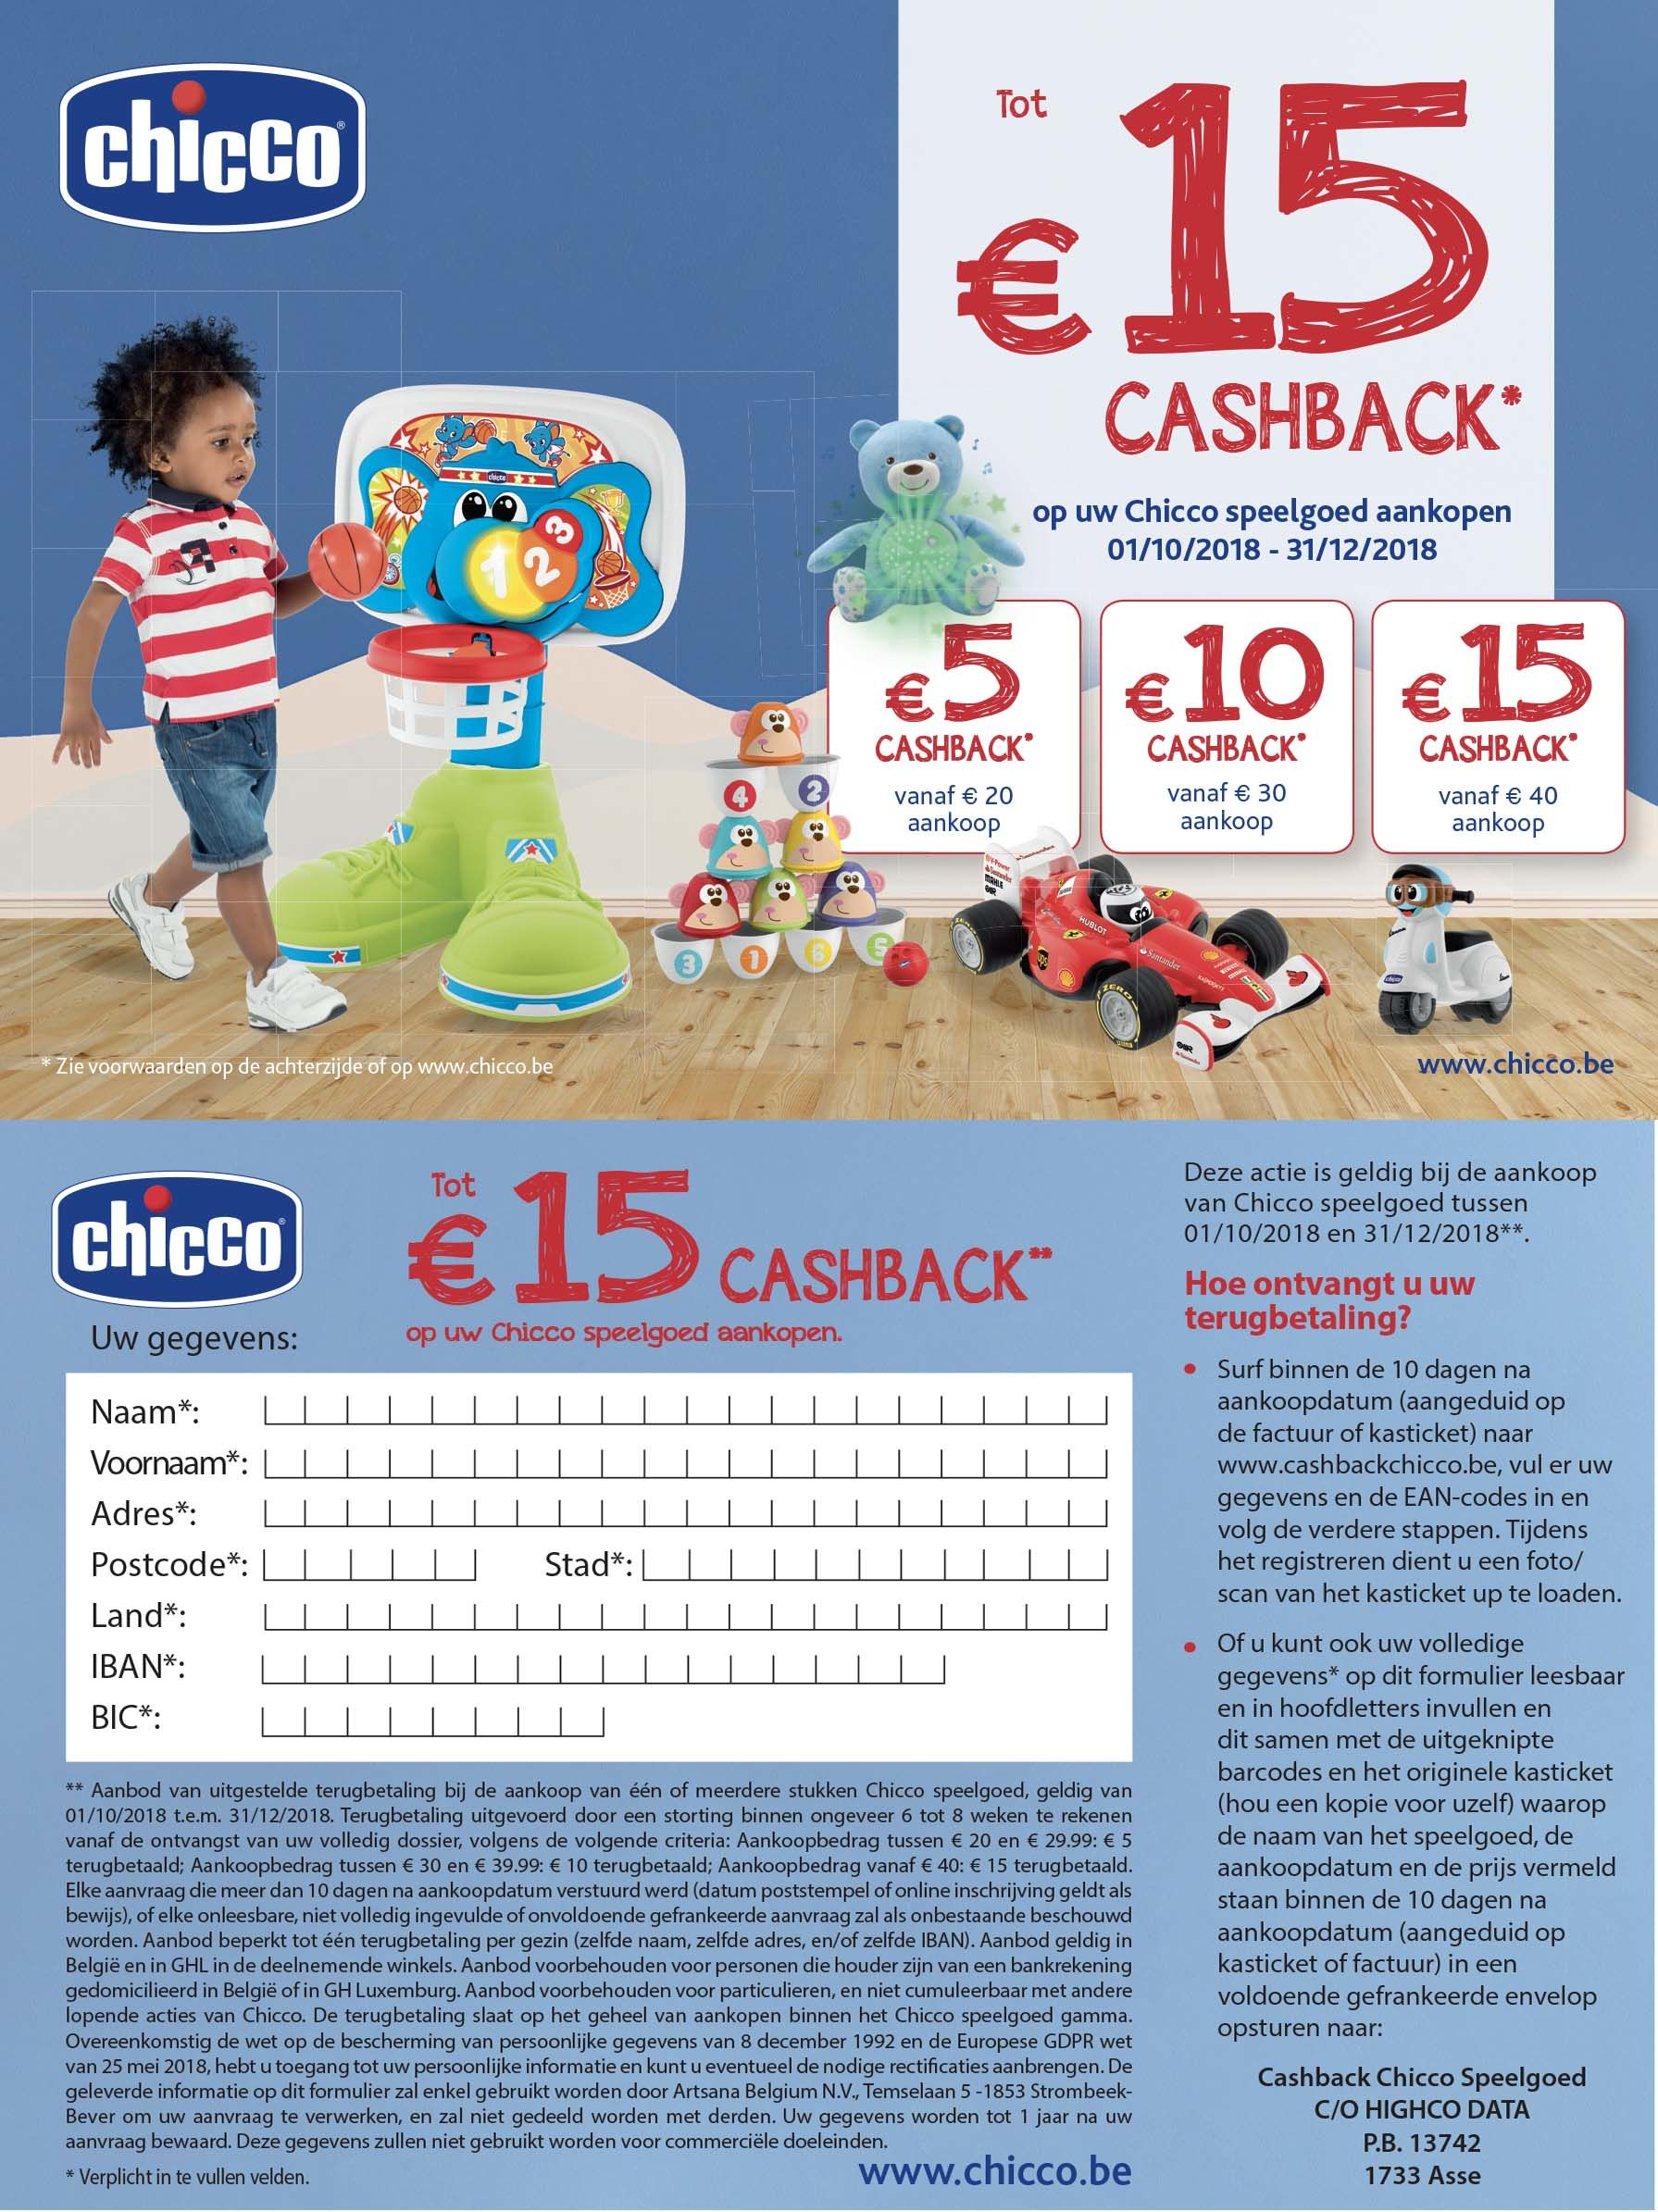 1807067 - CHICCO - Bulletin.indd